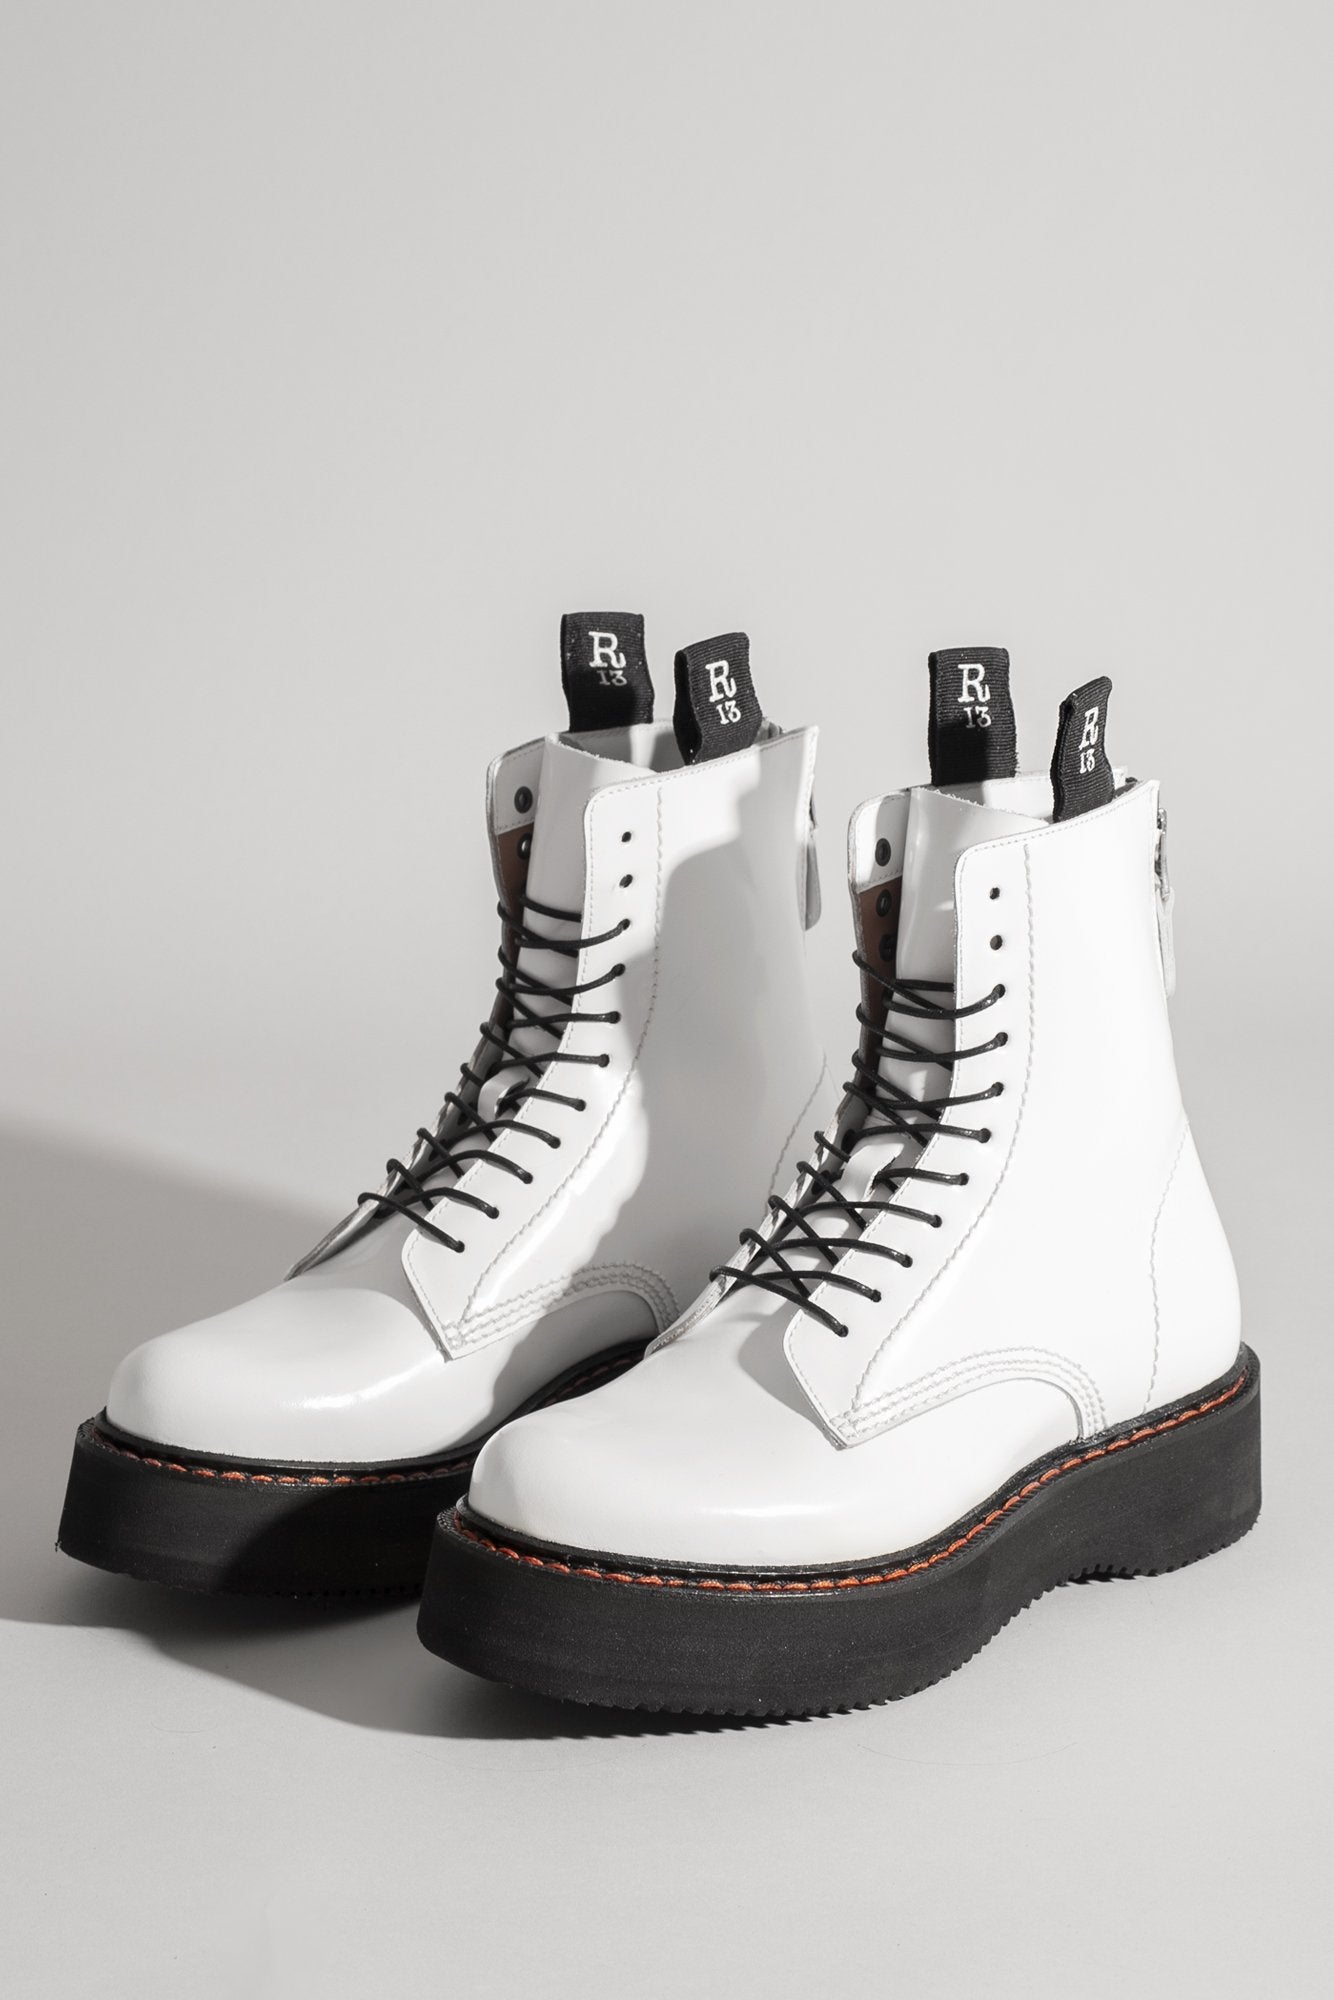 R13 Single Stack Lace up Boot - White